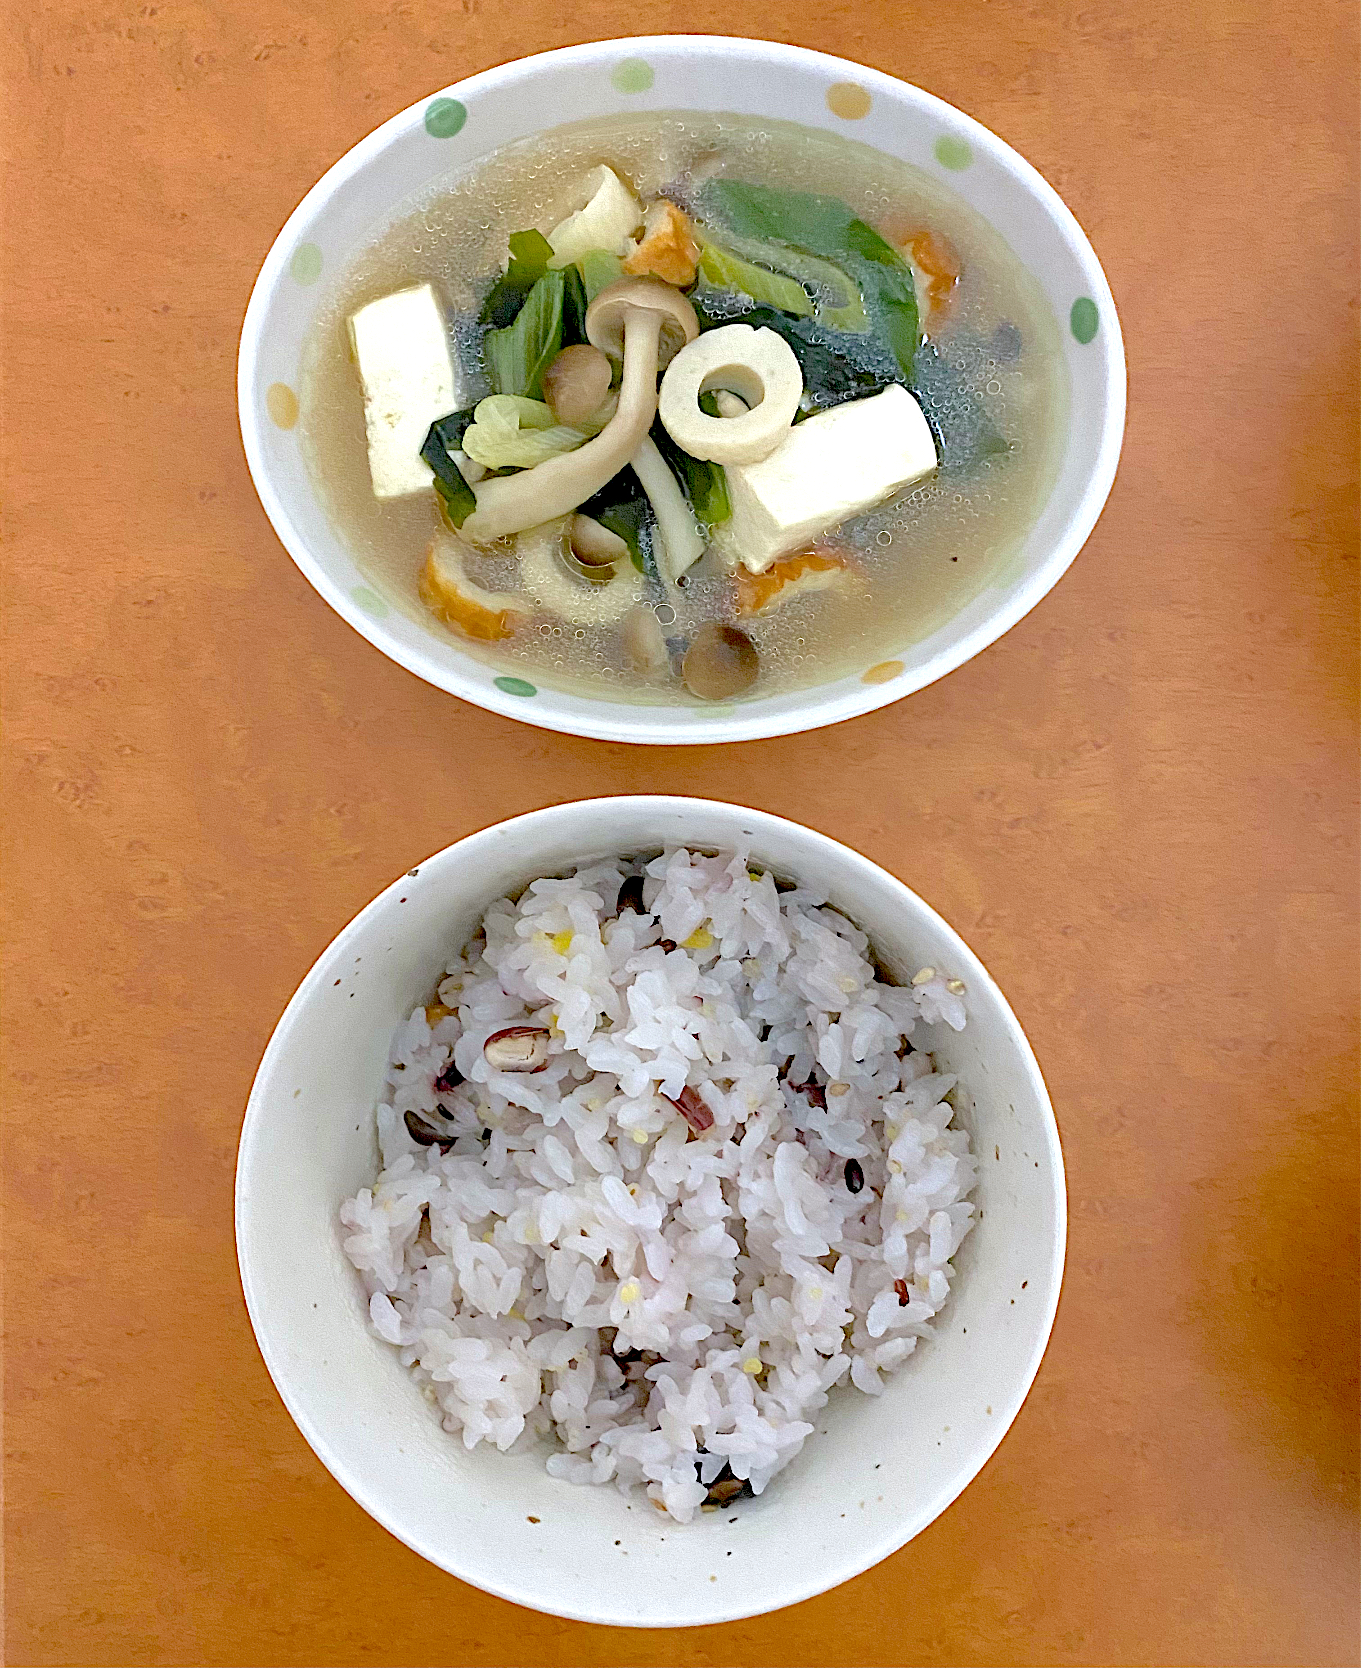 Dinner with simple food, a cup of mix rice and tofu mix soup